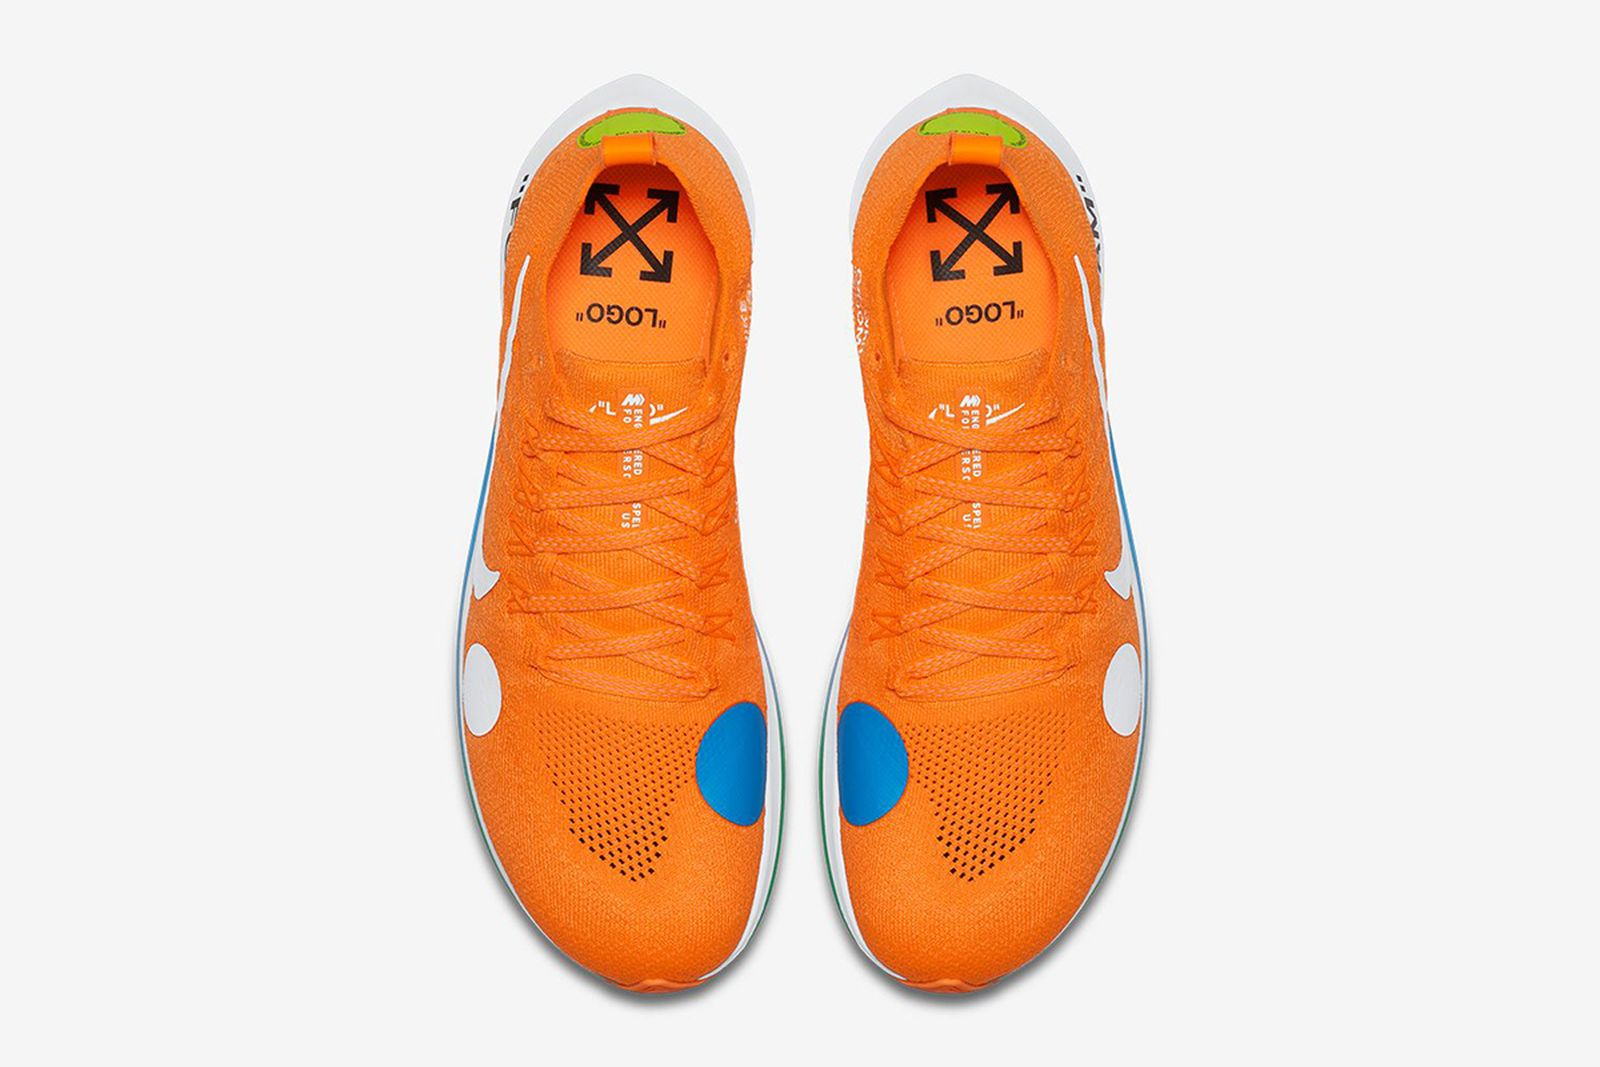 Zoom Fly Mercurial (orange)2 2018 FIFA World Cup Nike OFF-WHITE c/o Virgil Abloh